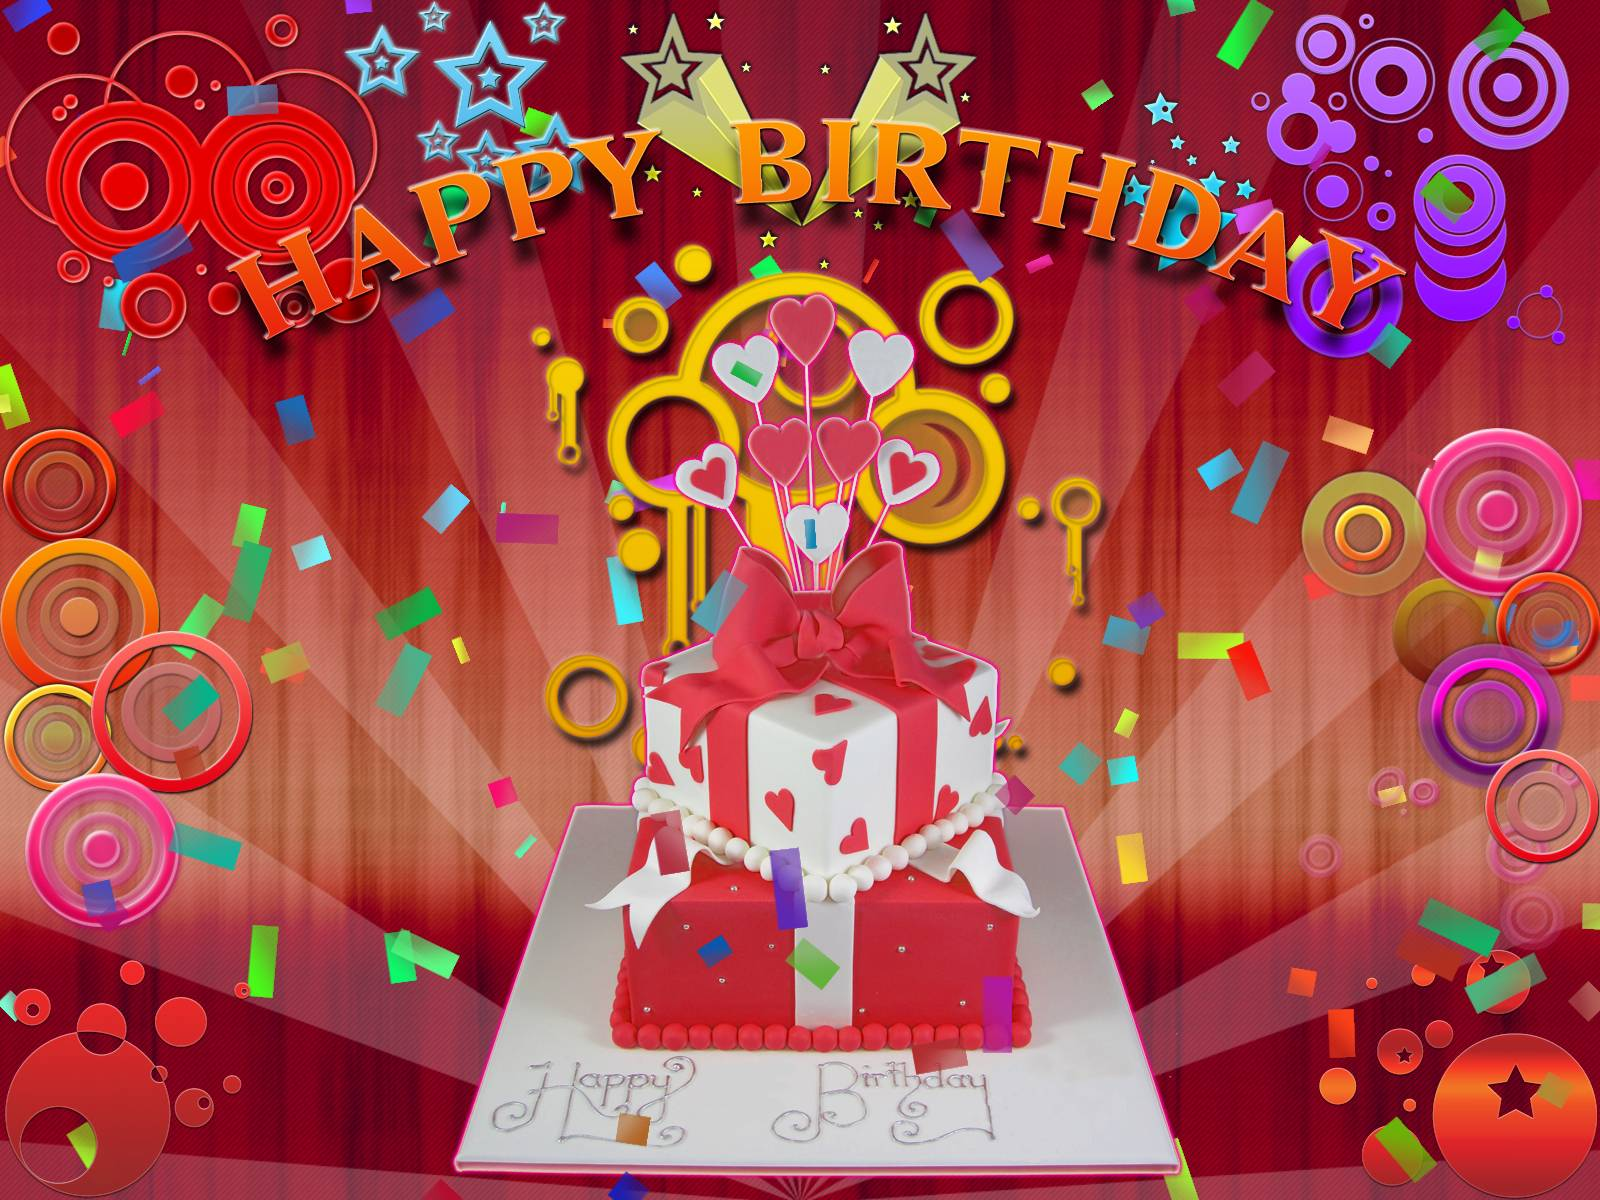 Happy Birthday Pictures Wallpapers and Backgrounds